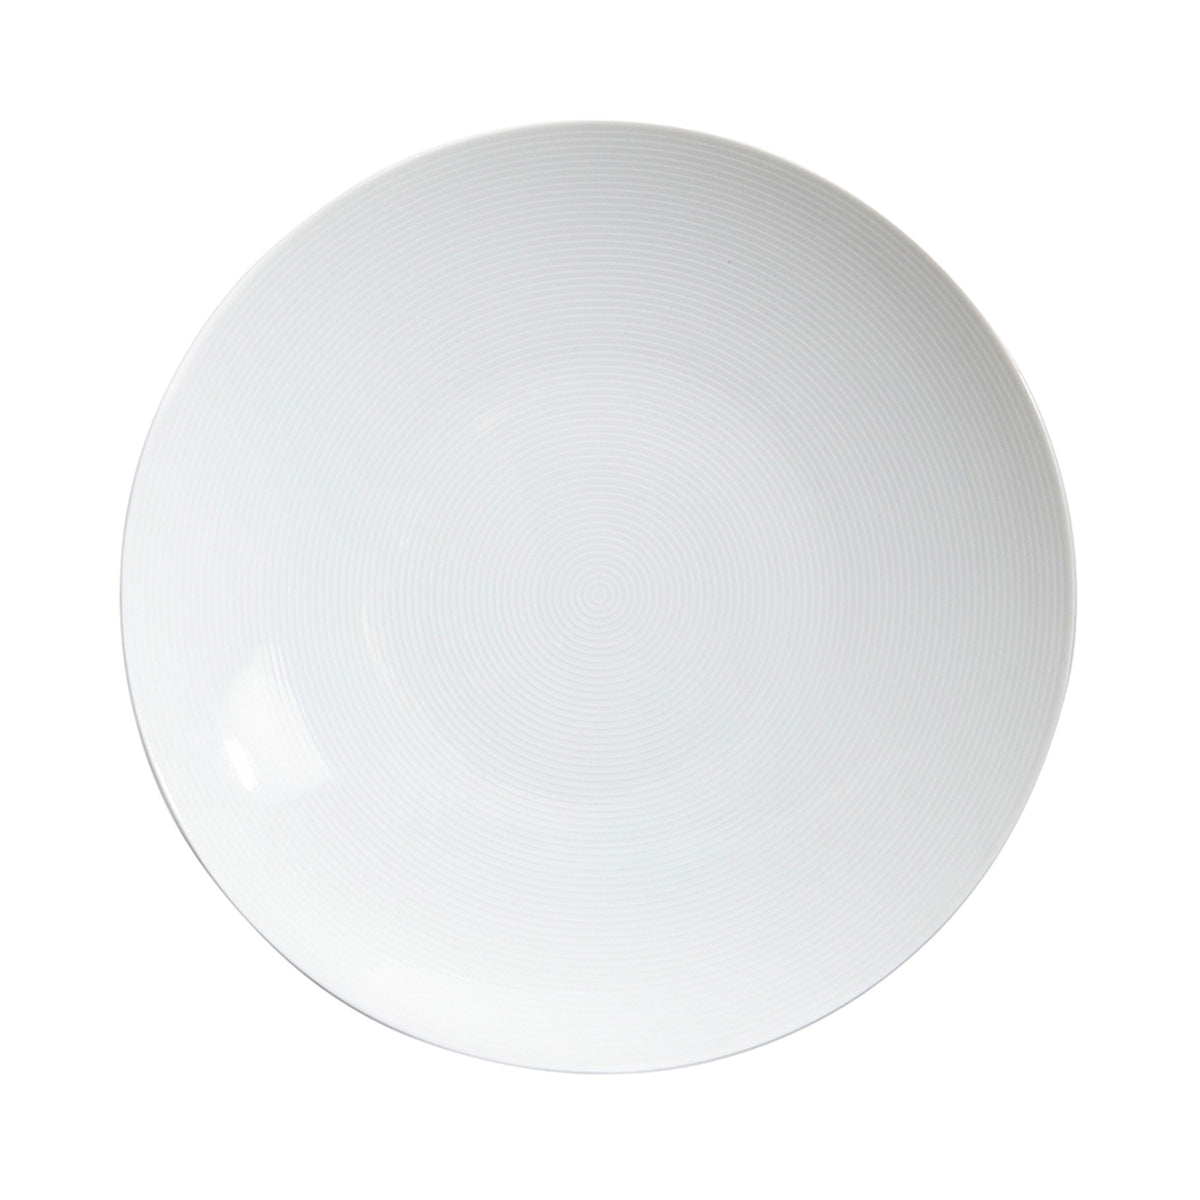 Loft White Porcelain Dinner Plate